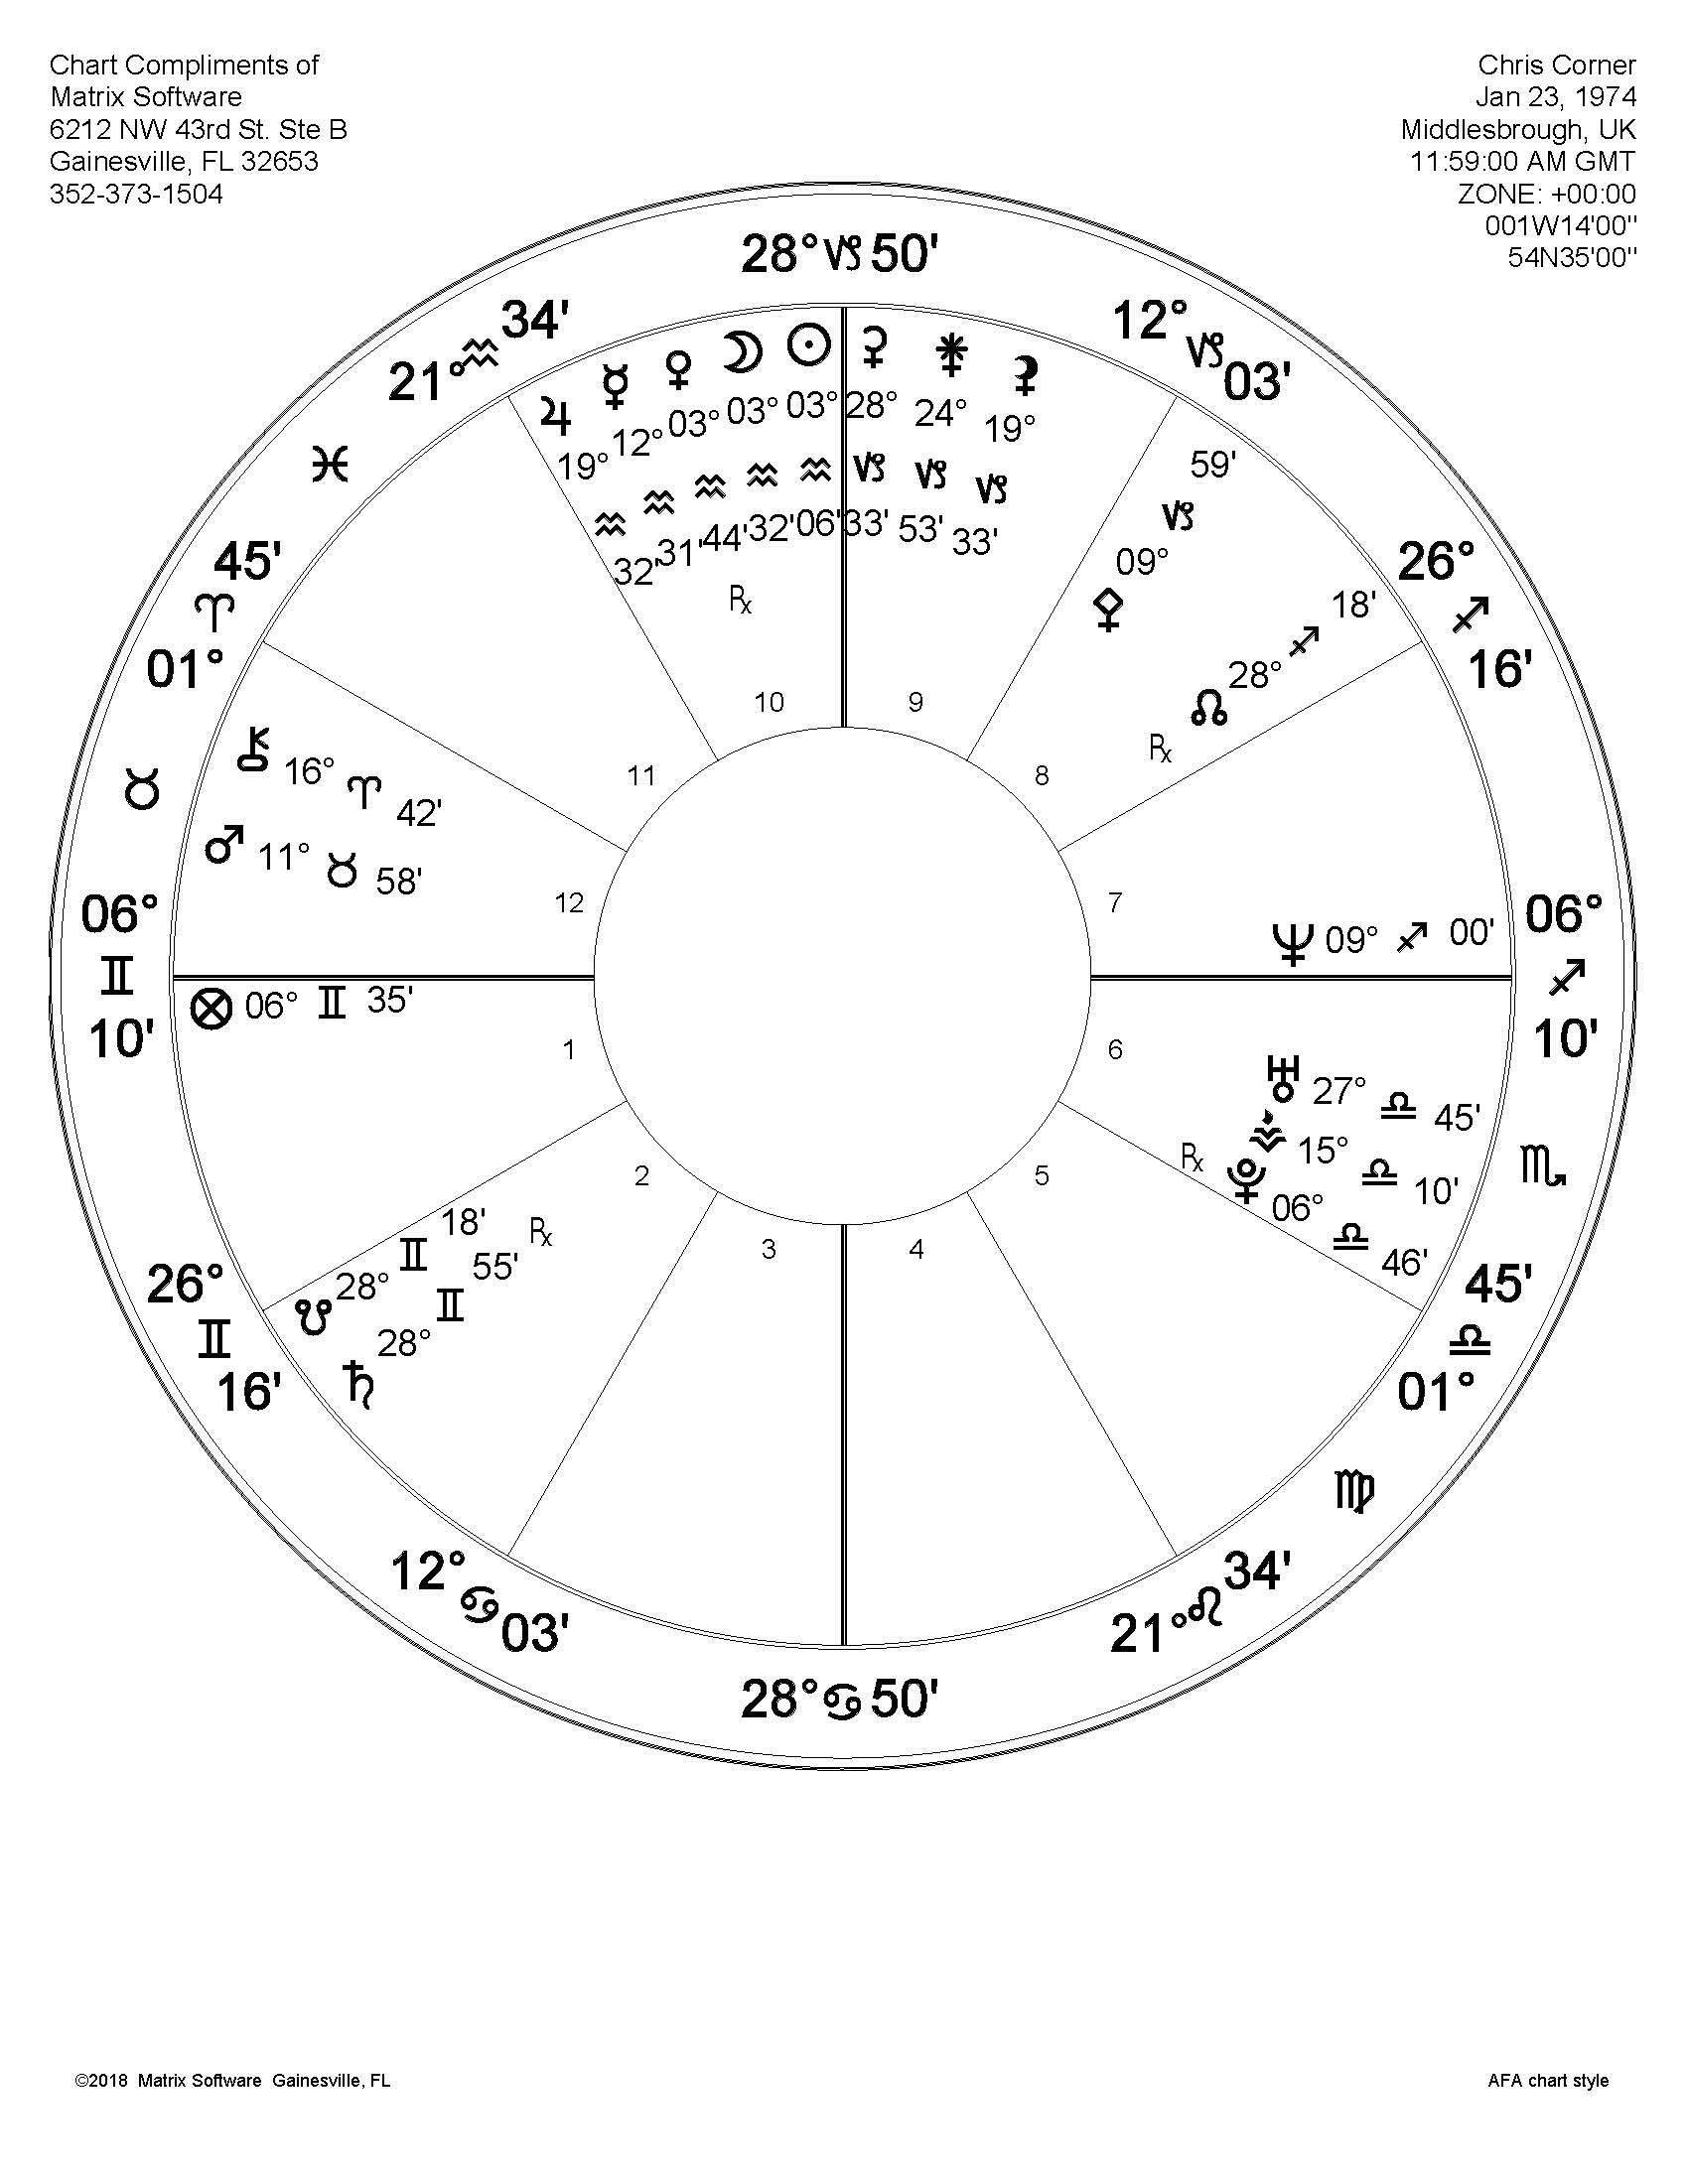 Natal chart of Chris Corner, birth time unknown.